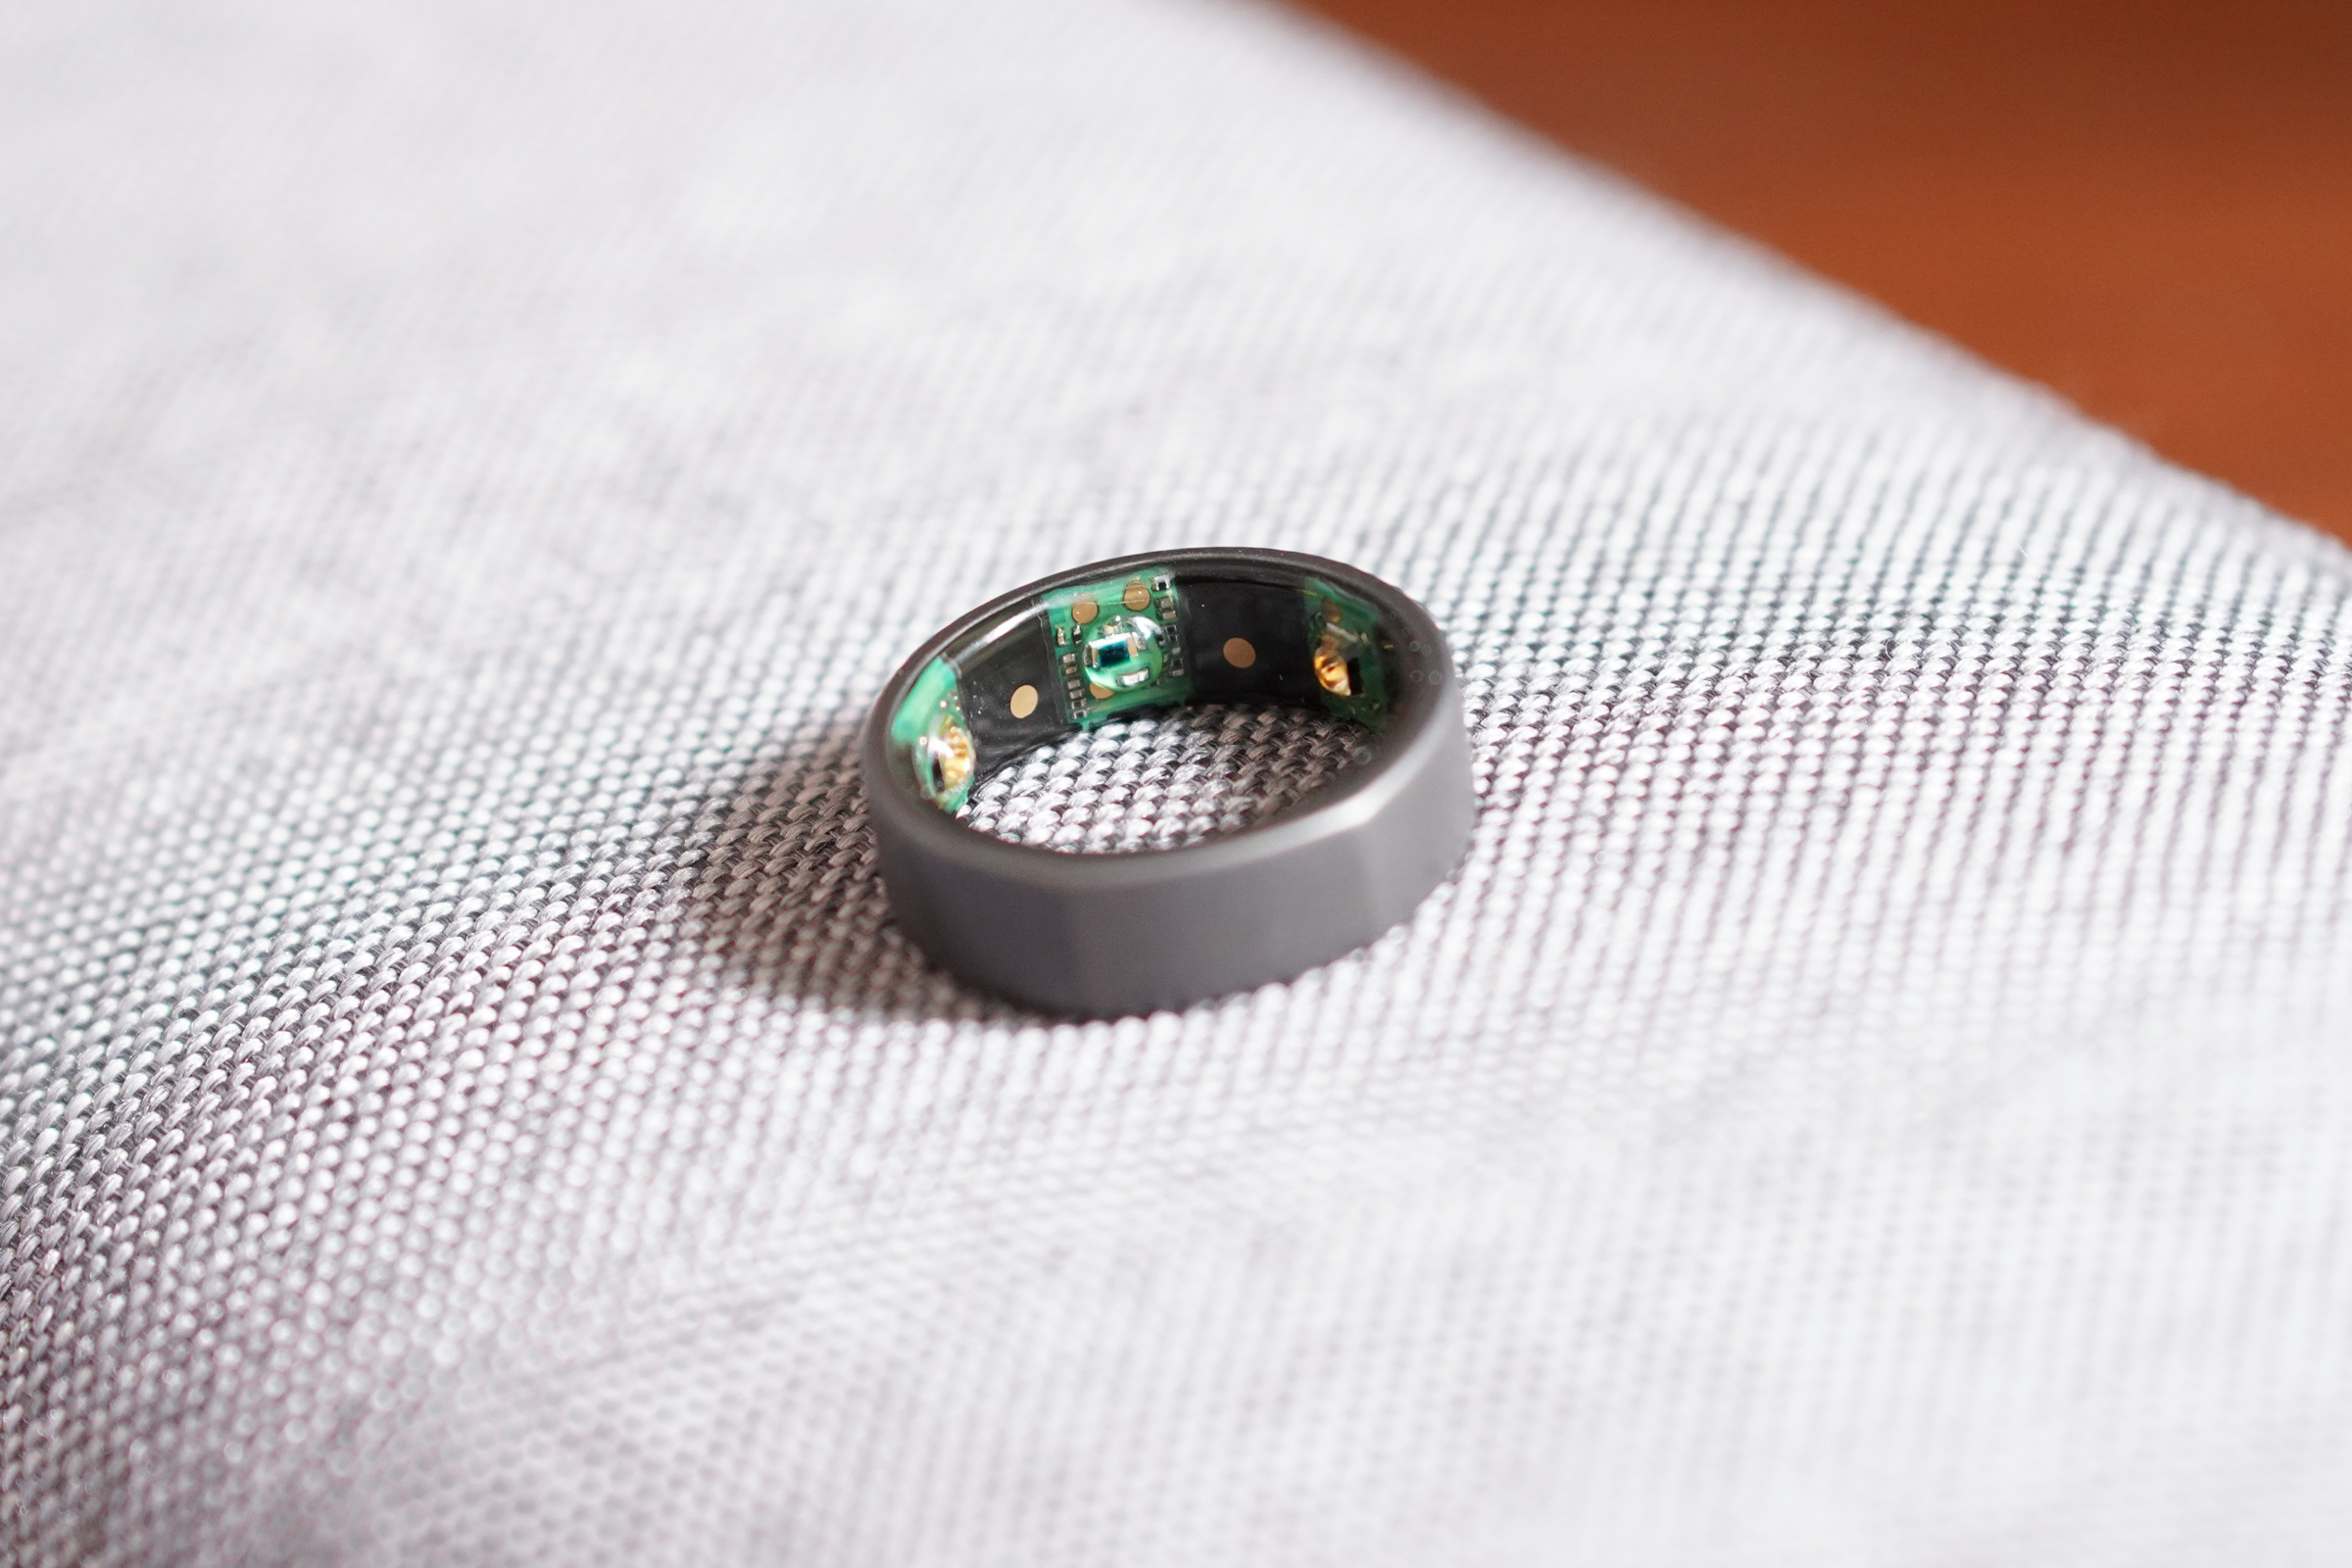 The Oura Ring is the personal health tracking device to beat in 2020 3